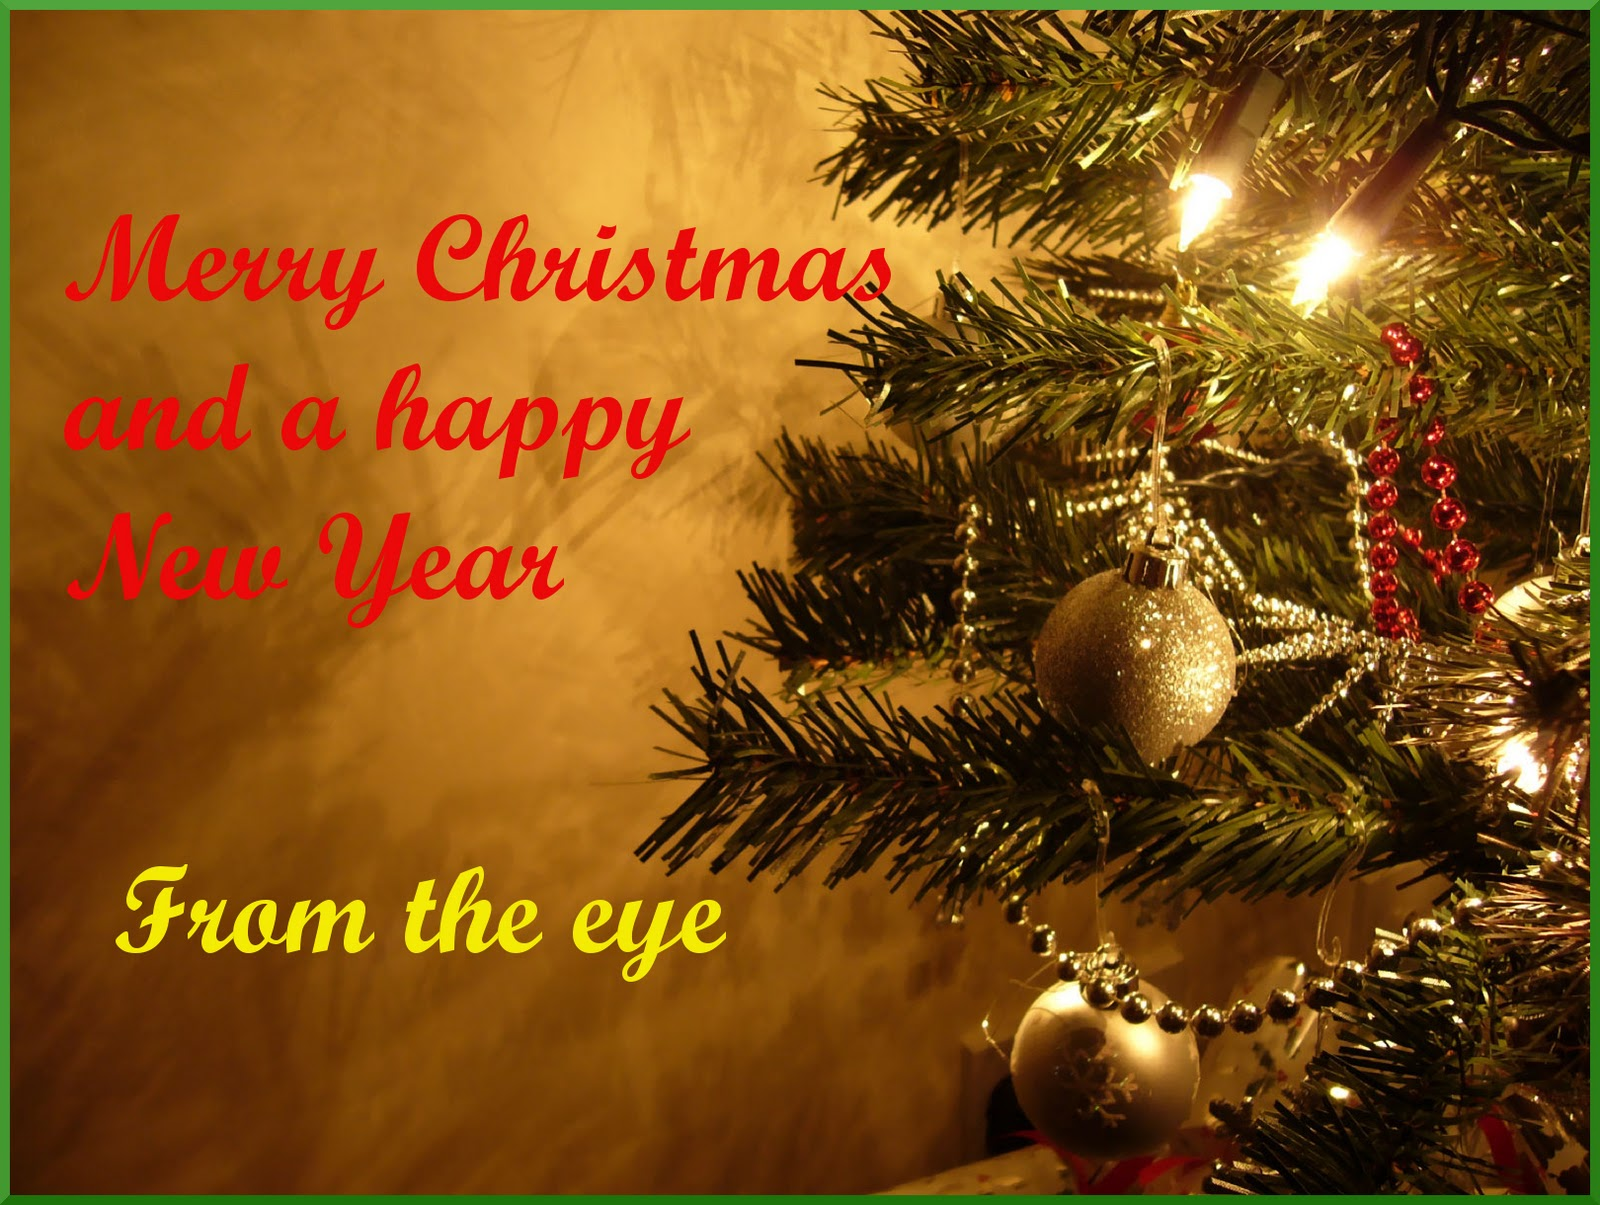 The Tigers Eye Merry Christmas To All